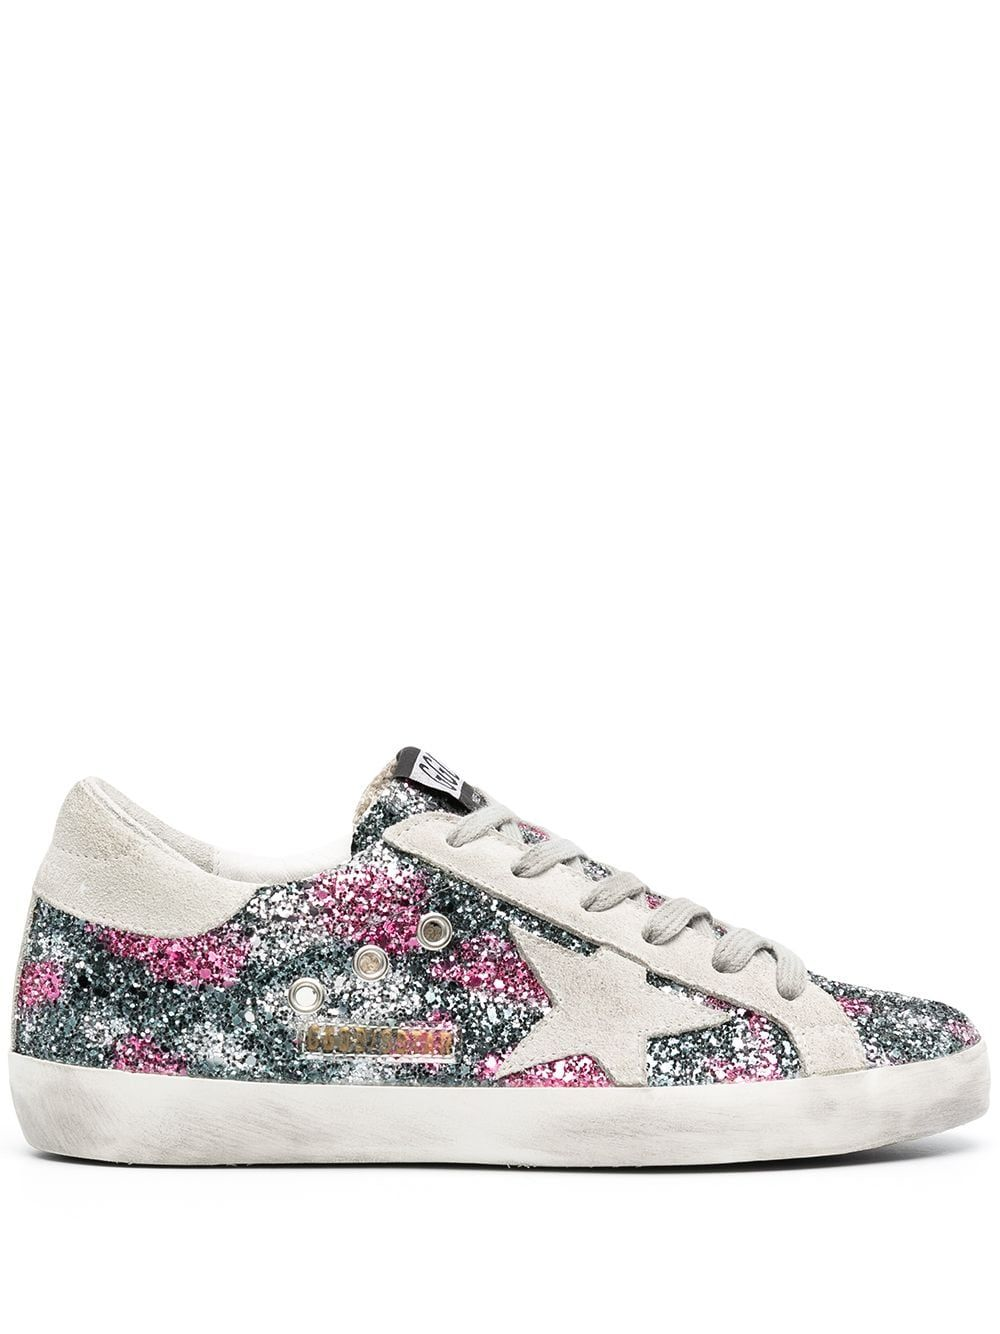 Golden Goose GOLDEN GOOSE WOMEN'S MULTICOLOR LEATHER SNEAKERS